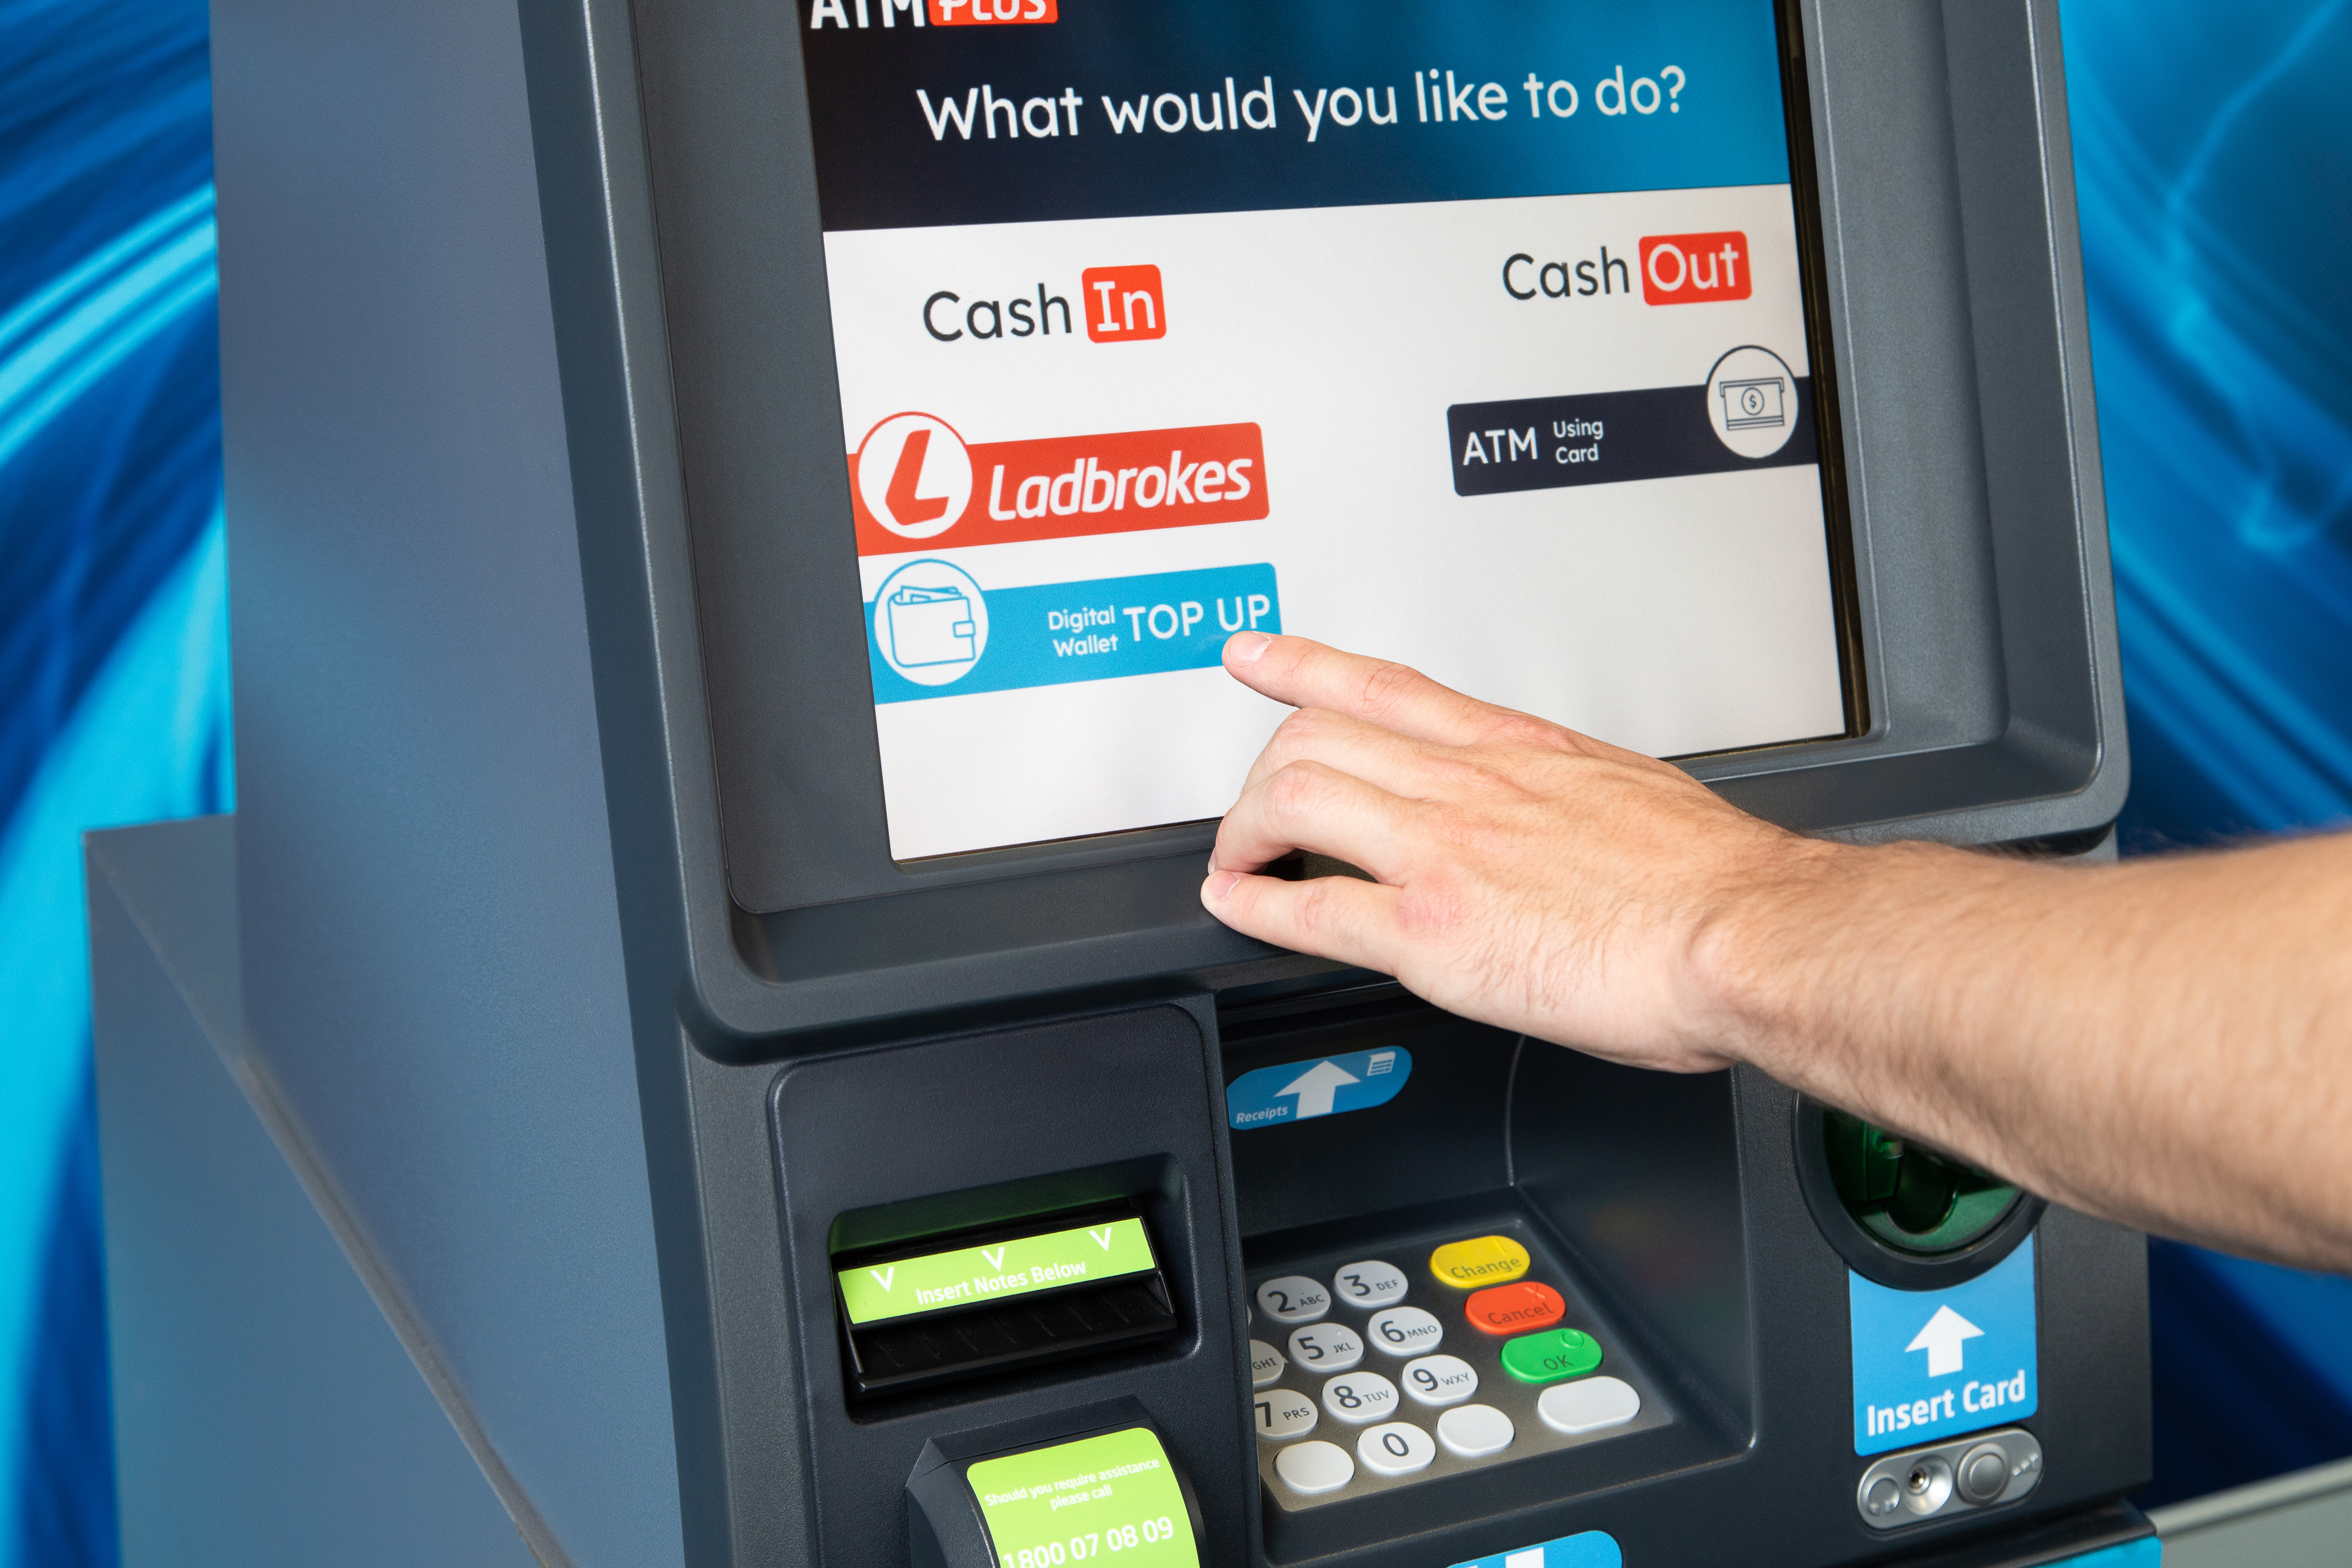 Now you can top top up your Ladbrokes wallet at the ATM